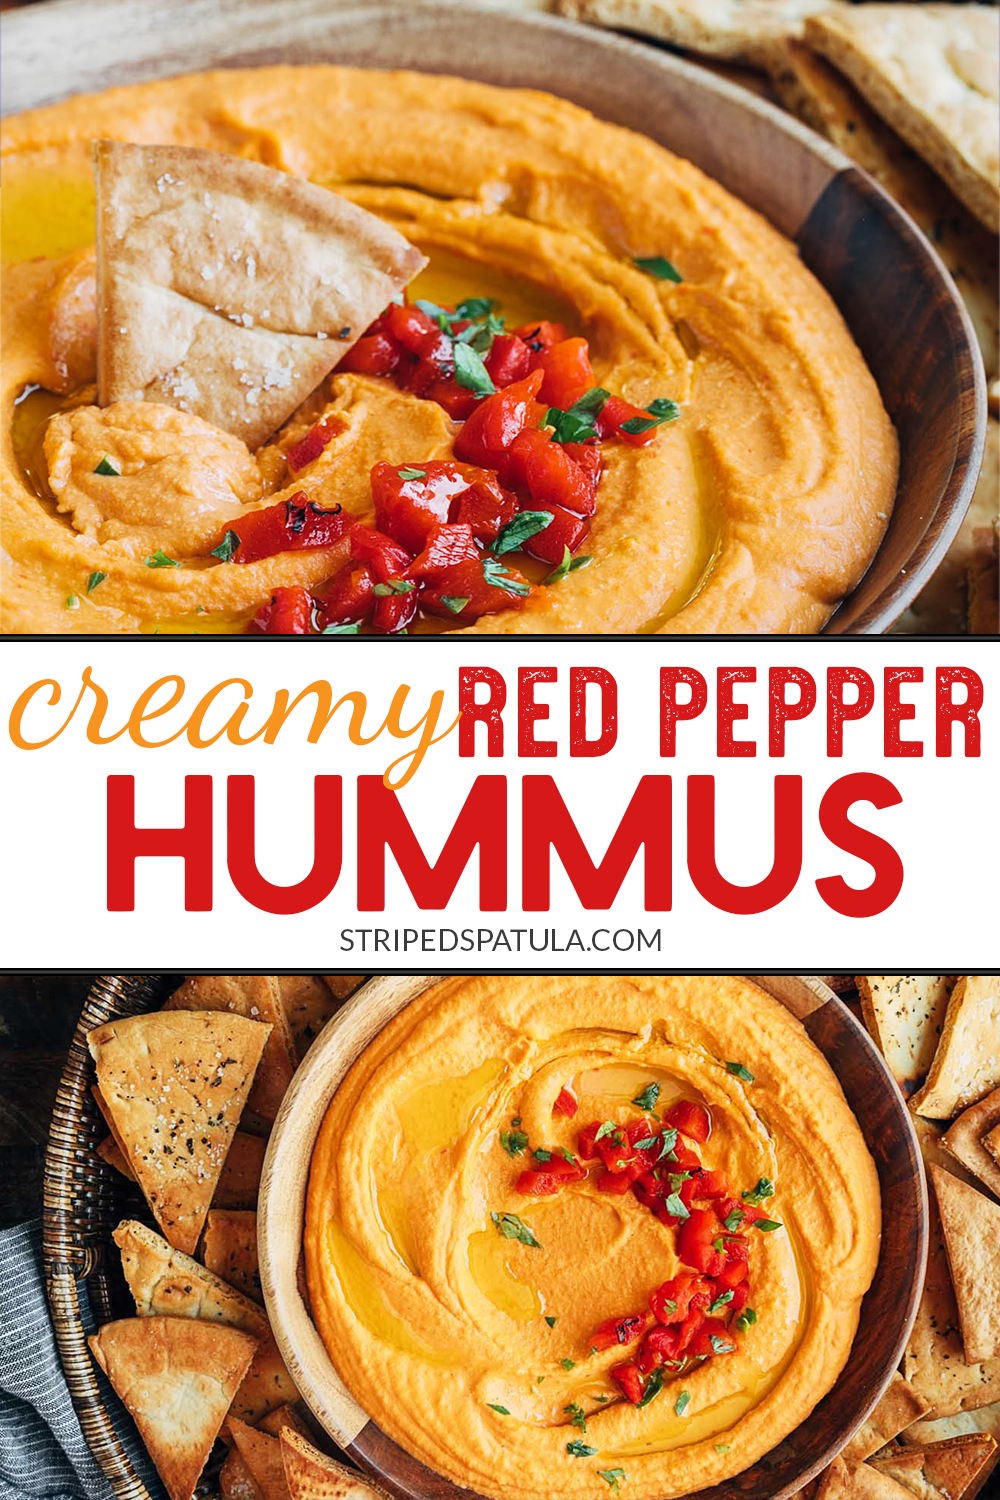 It's easy to make creamy, homemade Roasted Red Pepper Hummus! This recipe only takes 15 minutes t